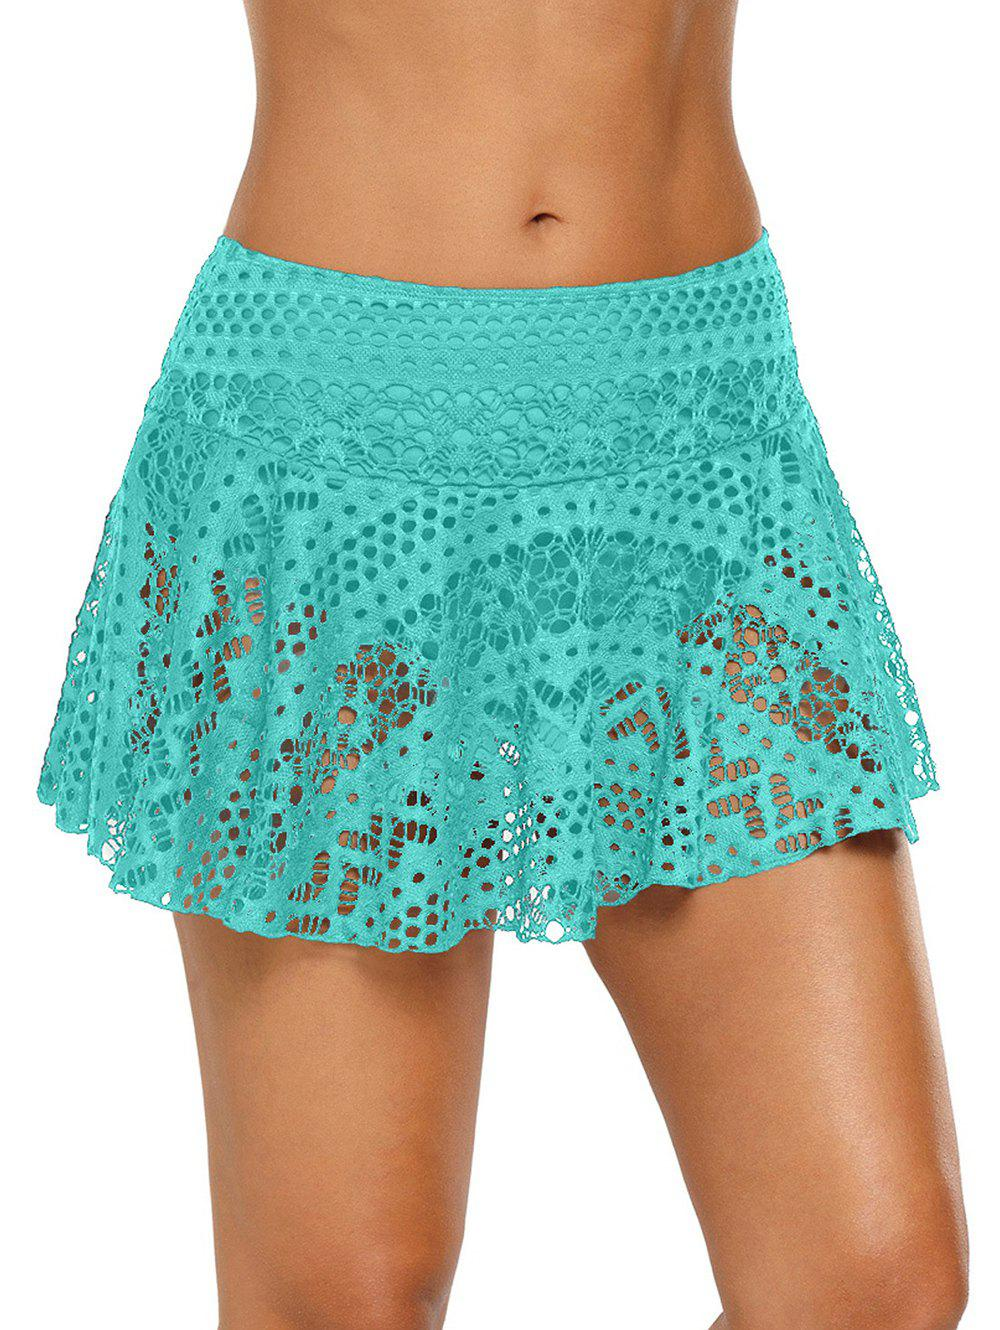 Crochet Skirted Swimming Briefs - MACAW BLUE GREEN S